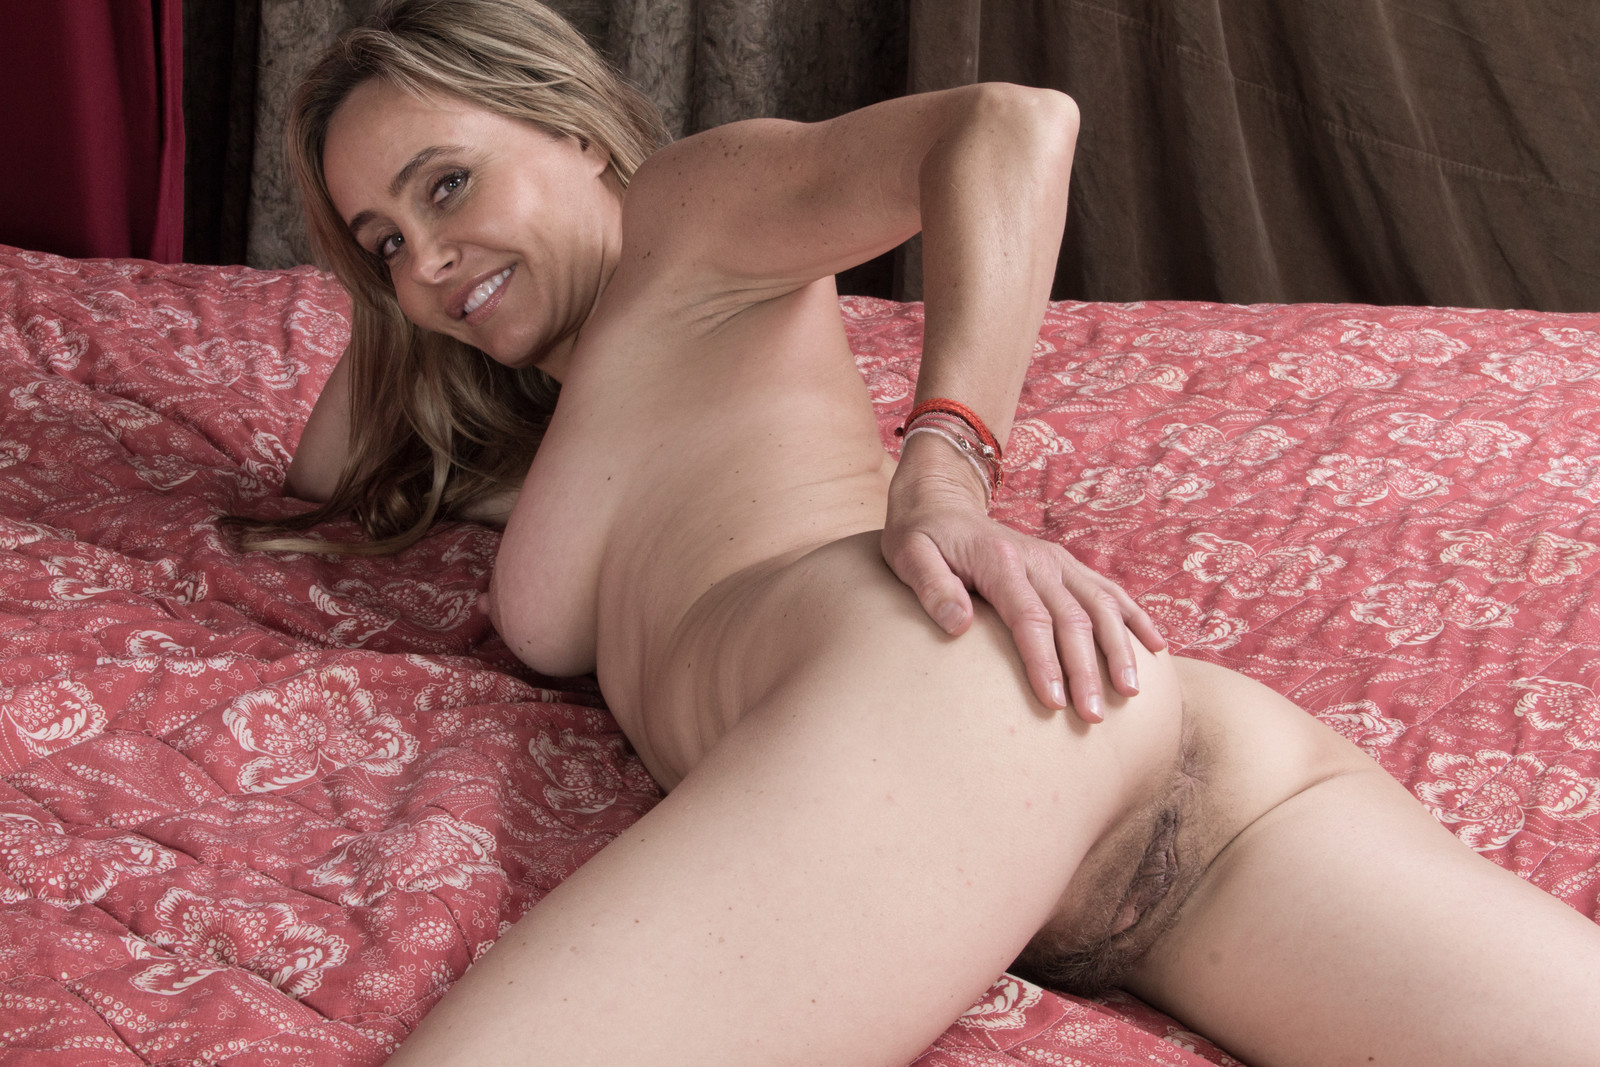 Hairy milf on bed